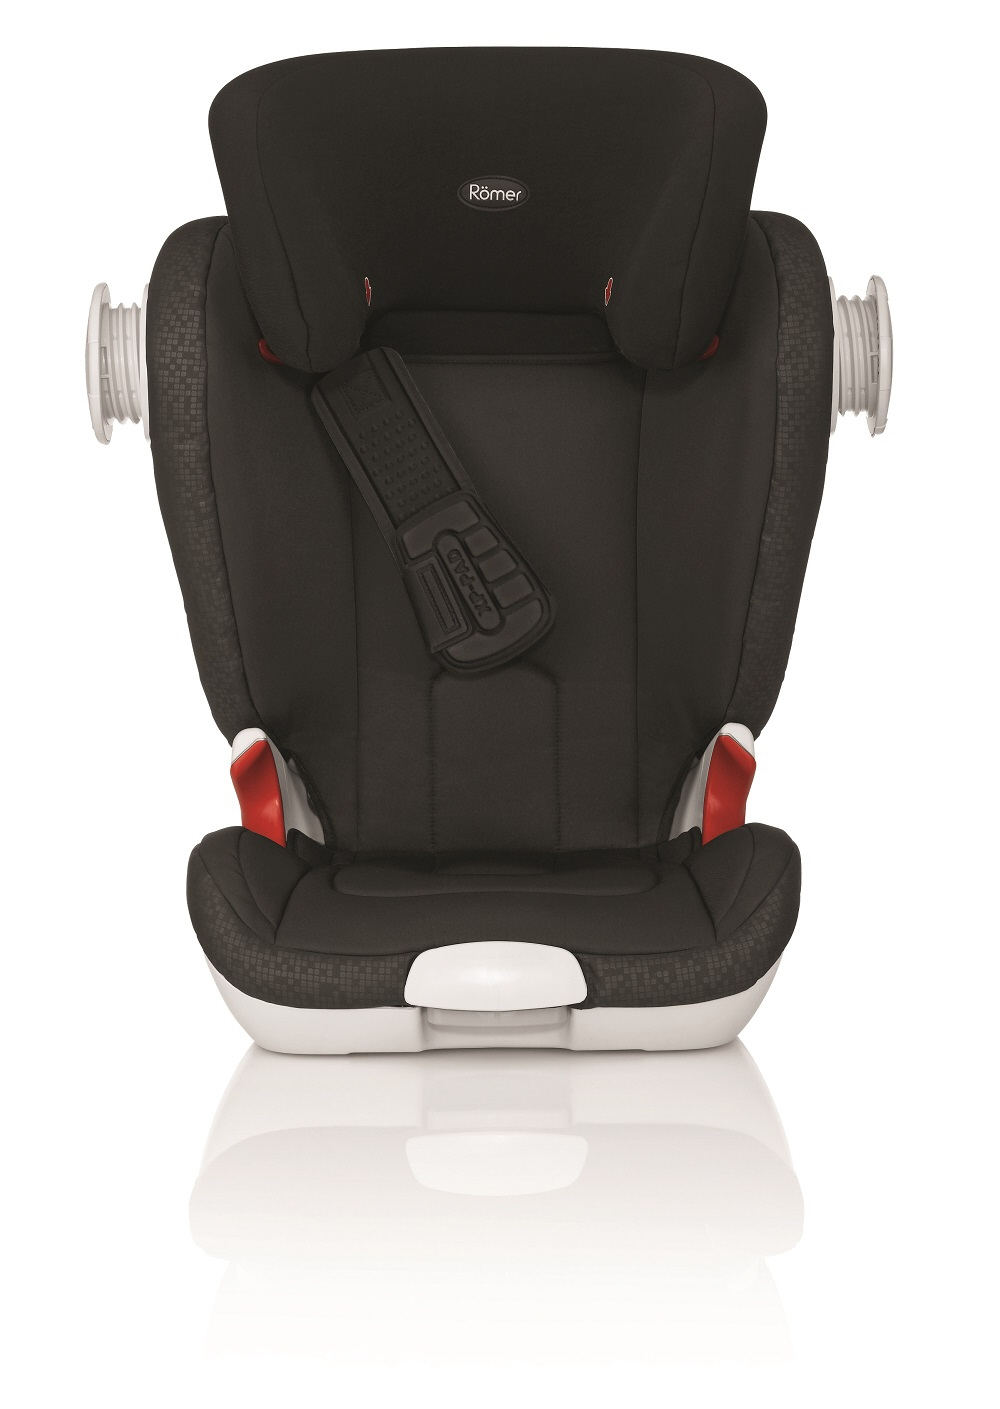 britax r mer car seat kidfix xp sict 2015 black thunder buy at kidsroom car seats. Black Bedroom Furniture Sets. Home Design Ideas